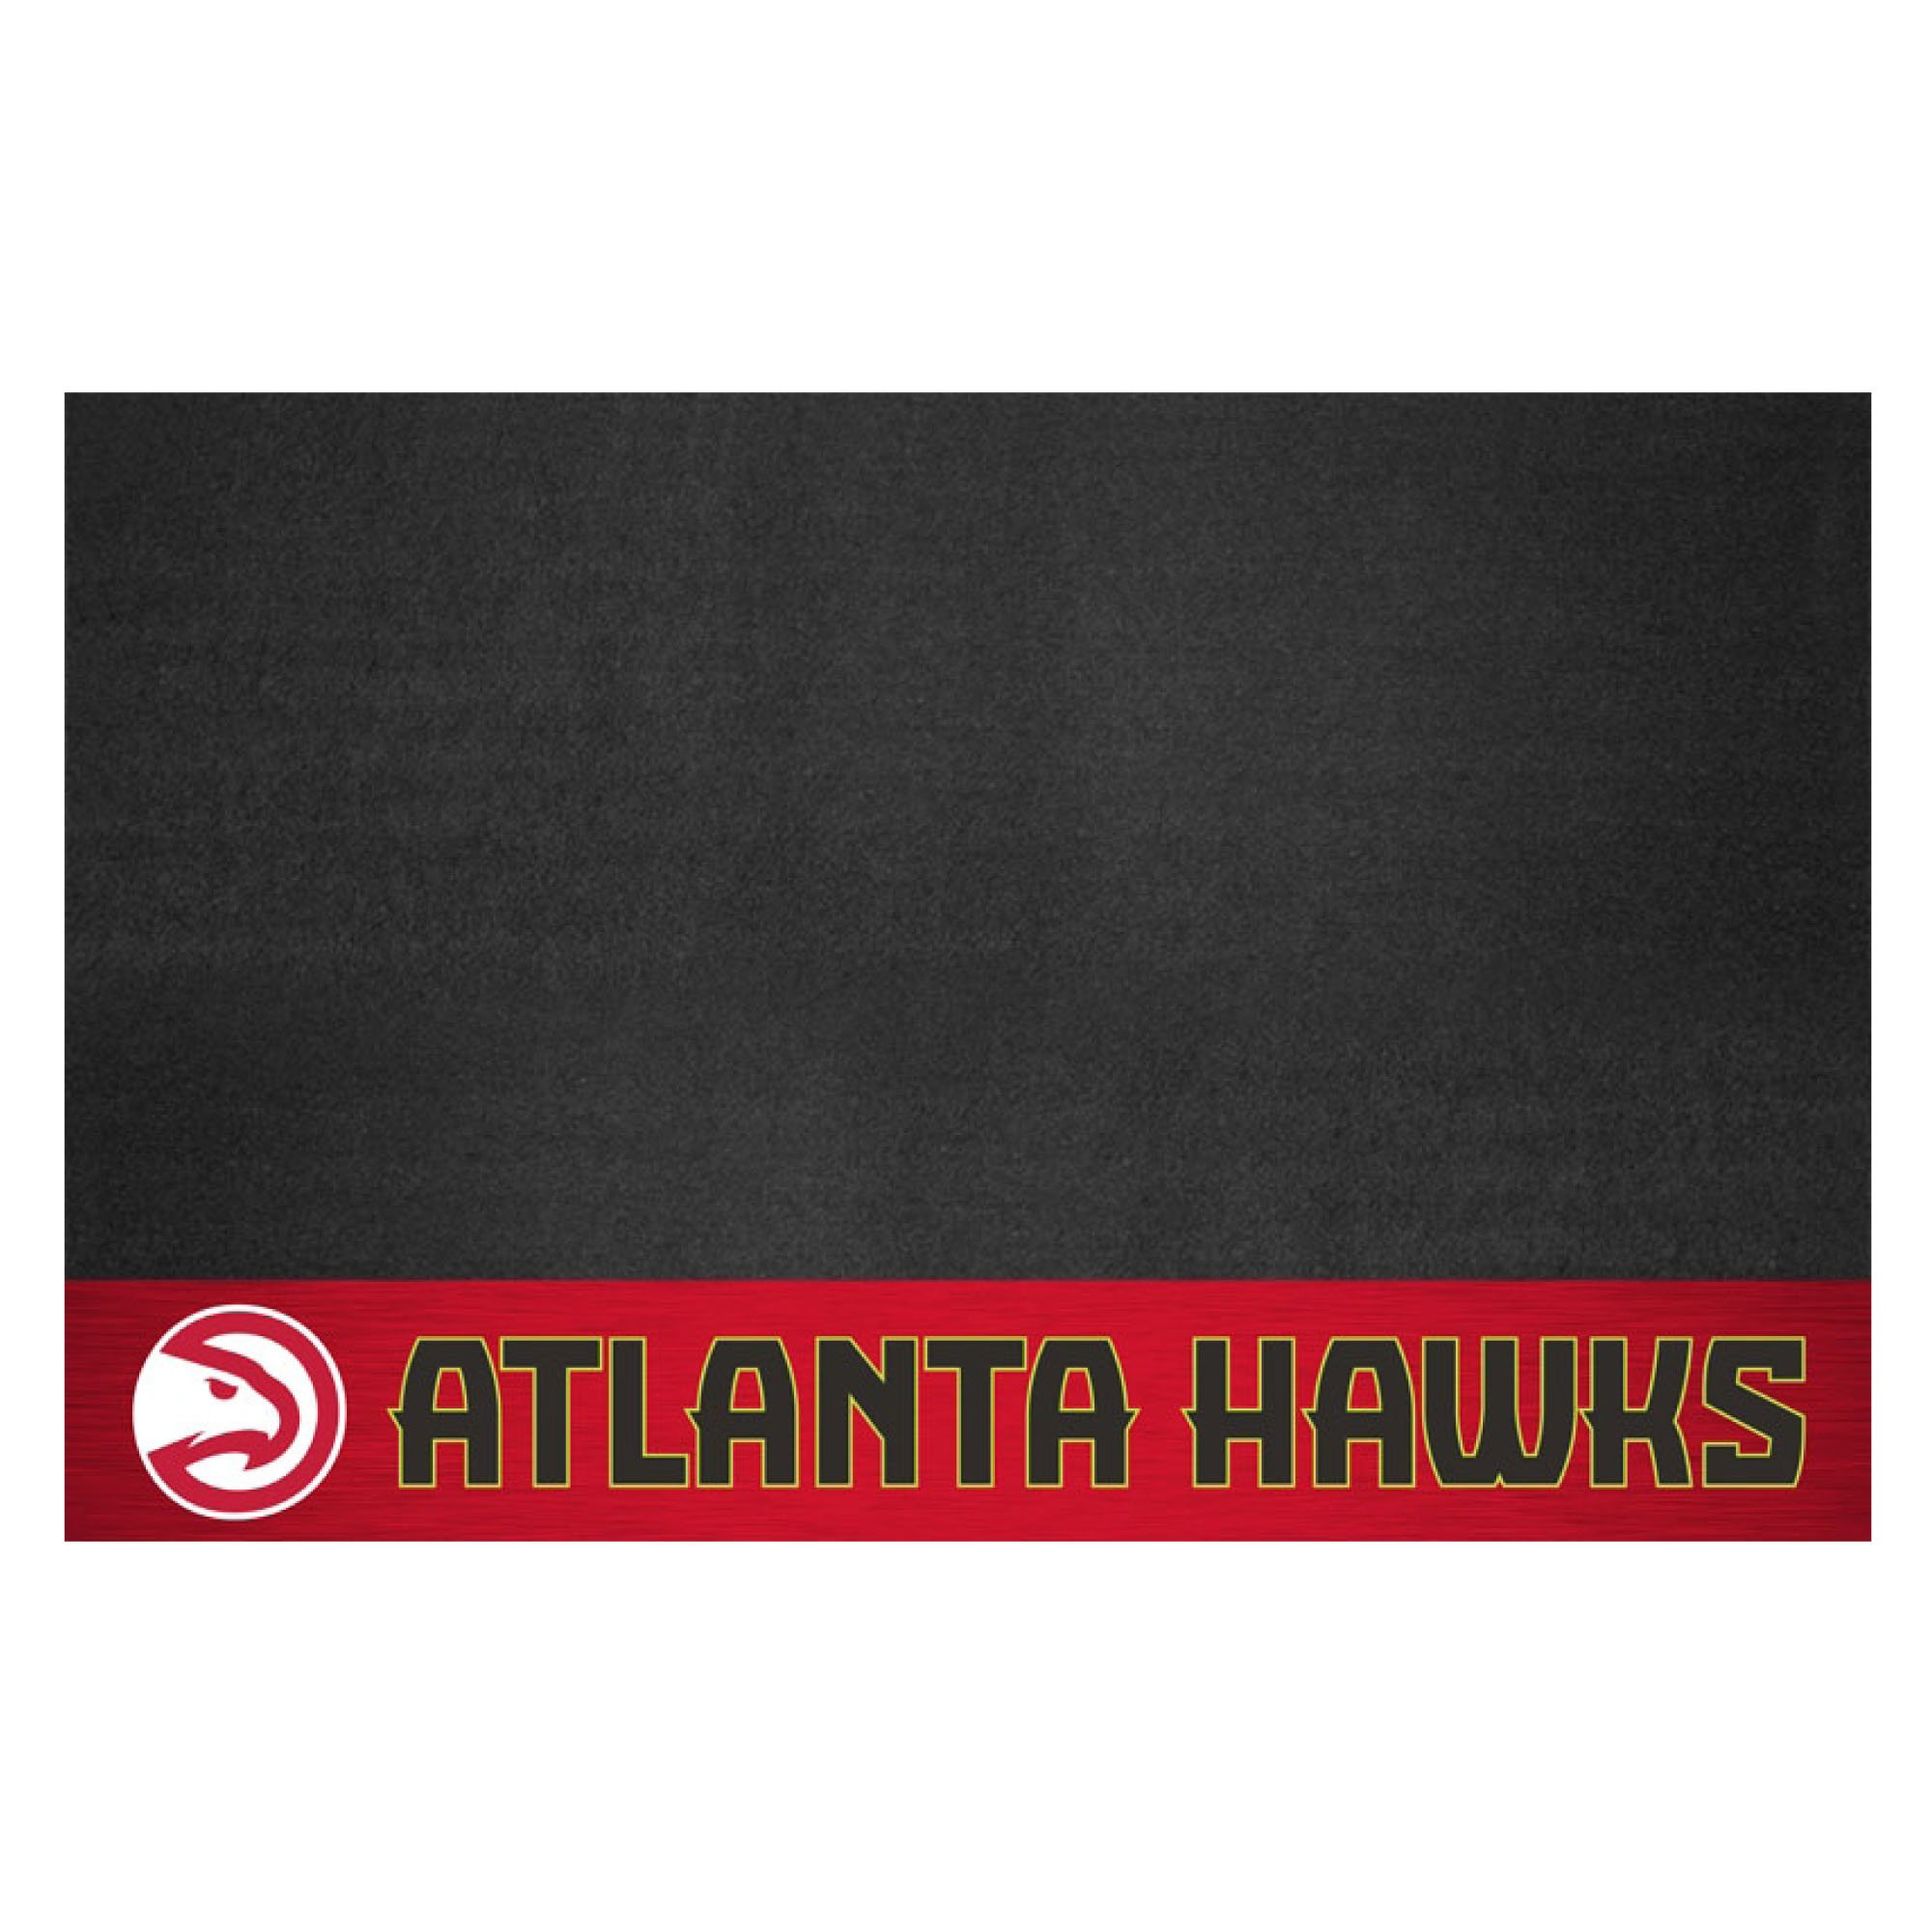 Fanmats NBA Atlanta Hawks Grill Mat, Small by Fanmats